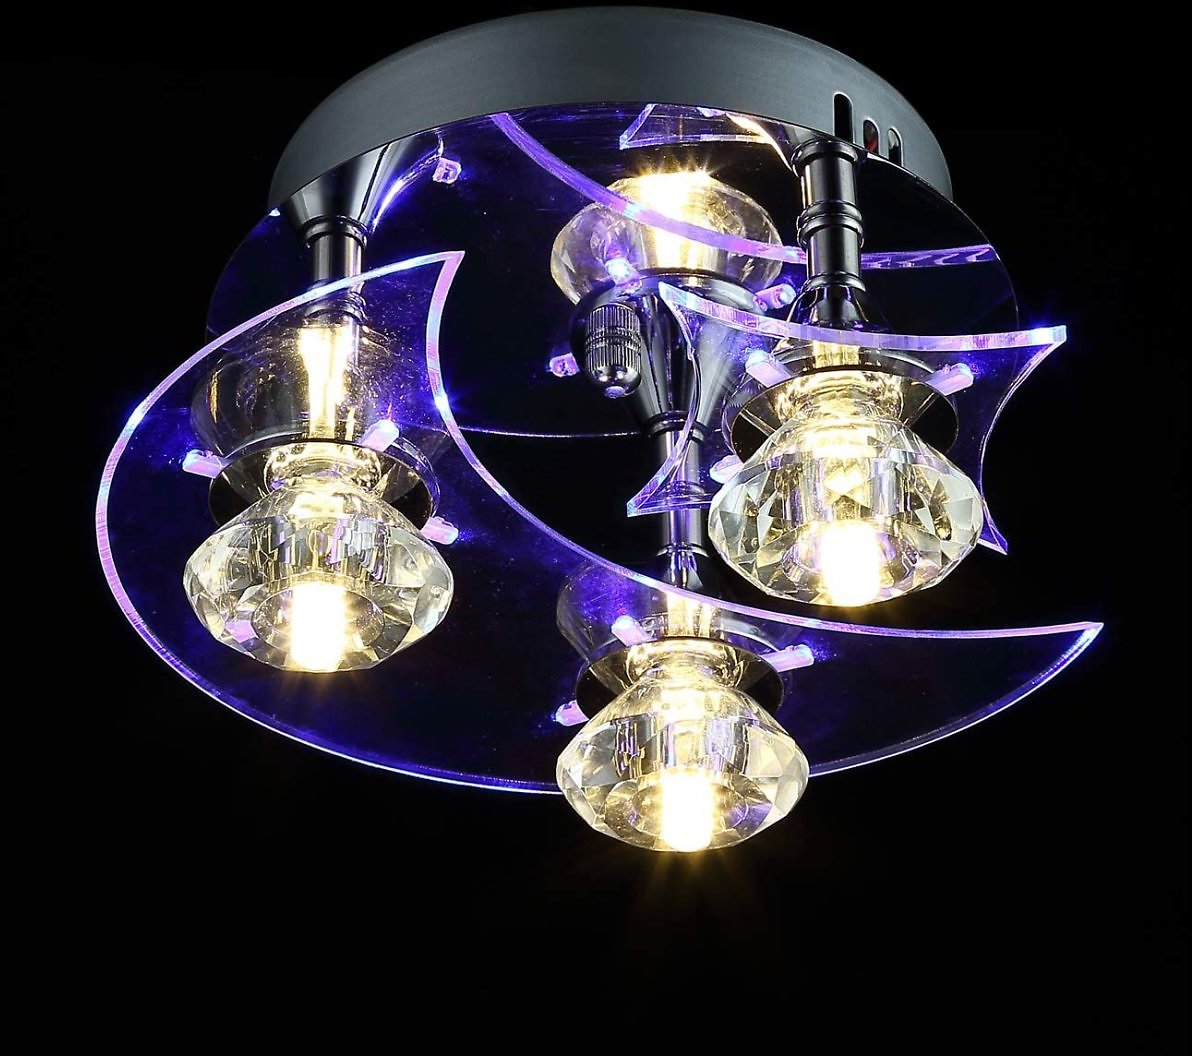 YOURDER G4 LED Acrylic Crystal Ceiling Light Fixtures - Moon Star Style, H5.5'' X W9.5'', Pendant Flush Mount Lighting for Child